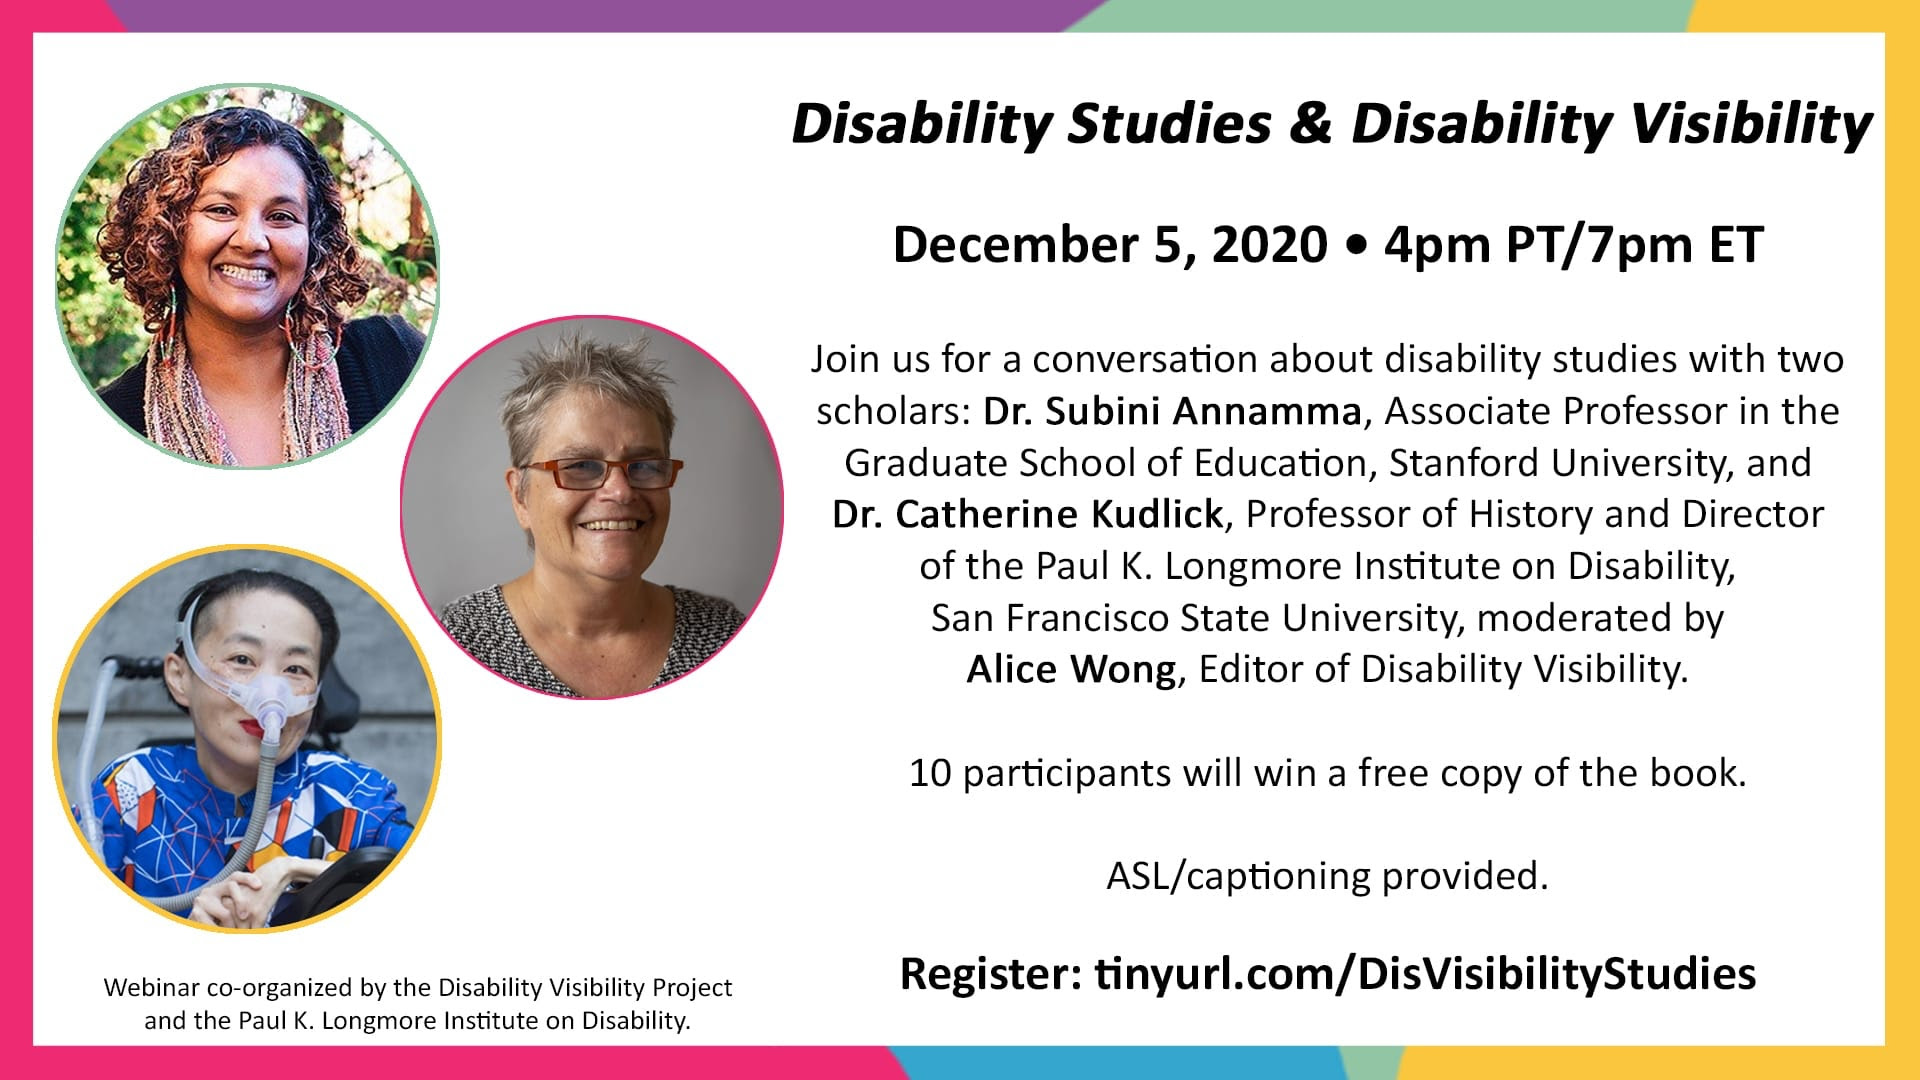 "Promotional graphic for the event ""Disability Studies & Disability Visibility"" featuring Dr. Subini Annamma, Dr. Catherine Kudlick, and Alice Wong. For more info visit tinyurl.com/DisVisibilityStudies. There are headshots of each person and they are all smiling at the camera. The graphic has a multicolor border."